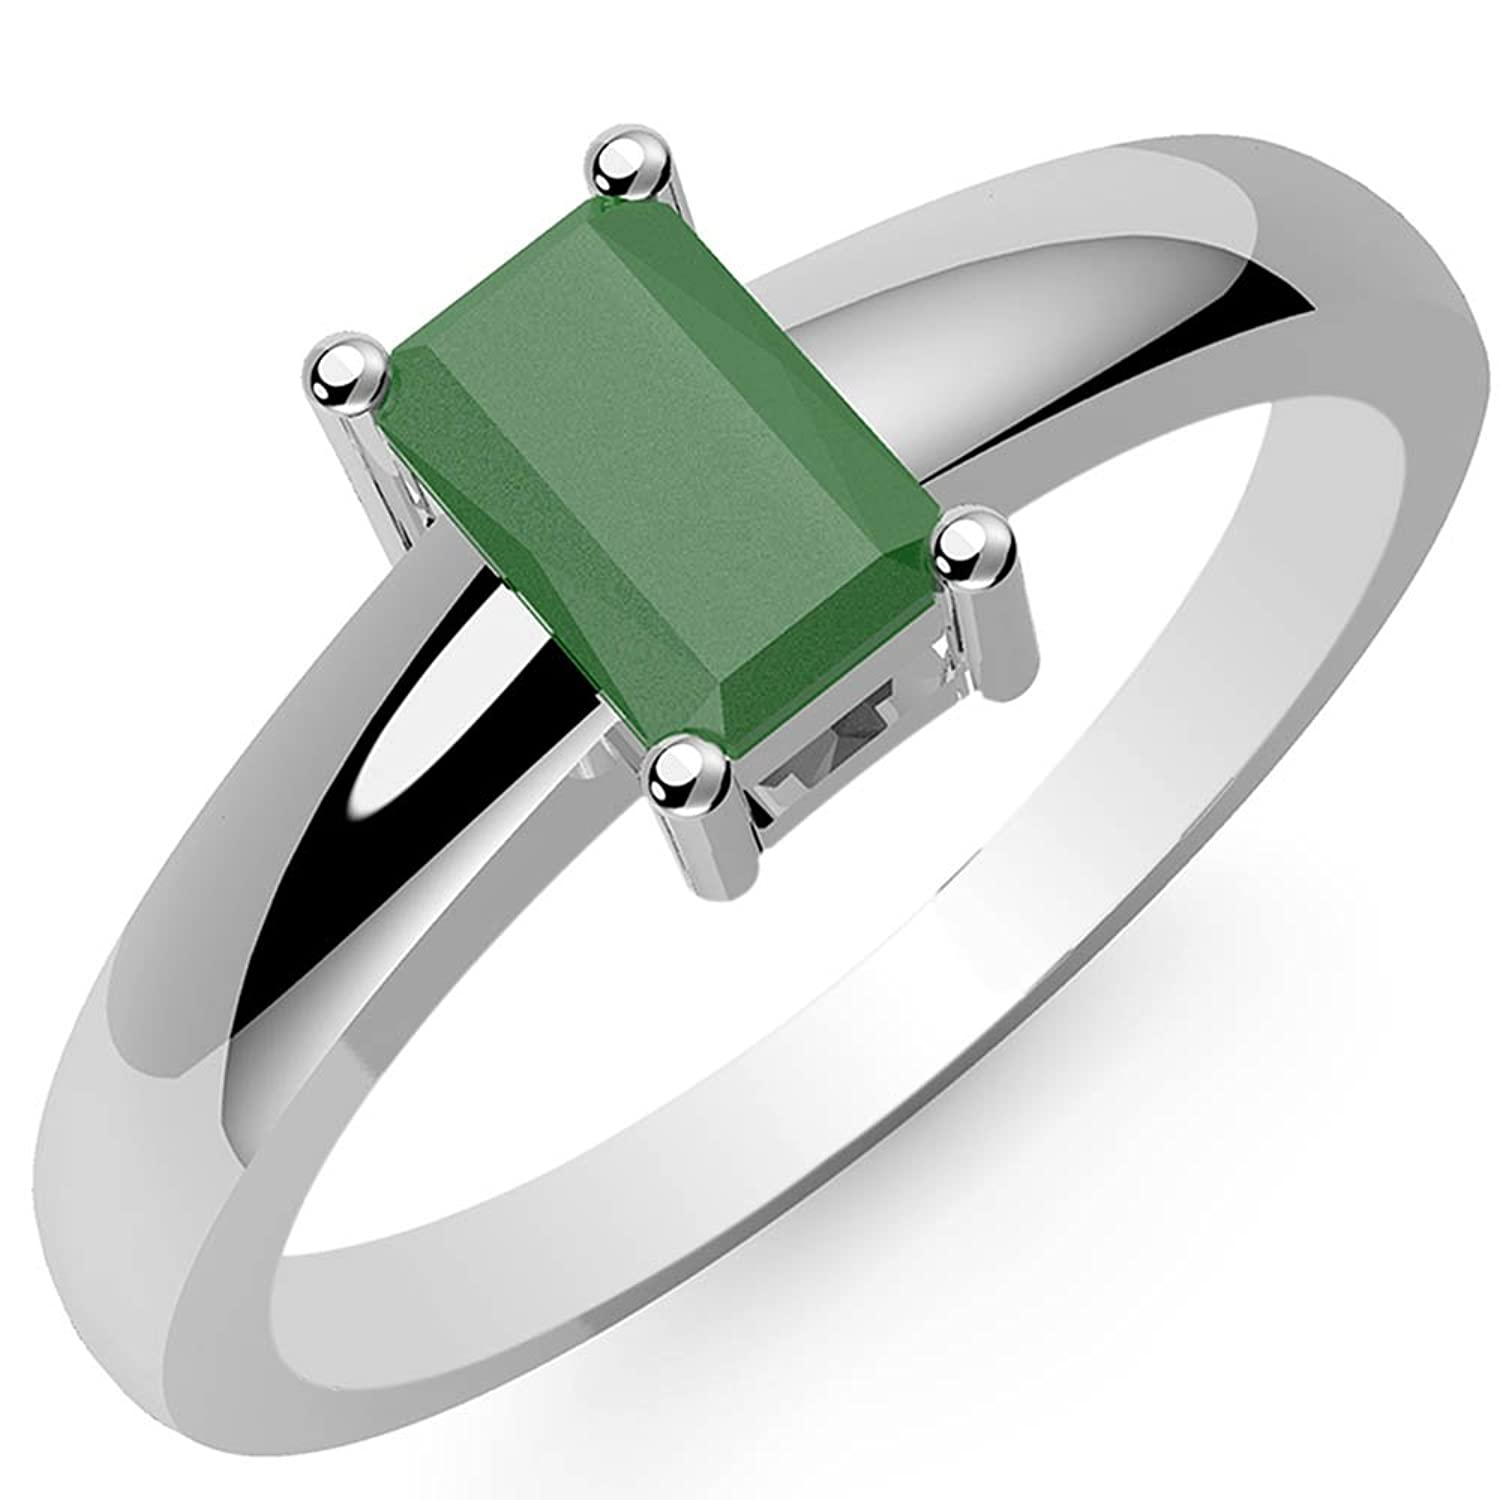 0.80ctw, Genuine Emerald 4x6mm Octagon & Solid .925 Sterling Silver Rings